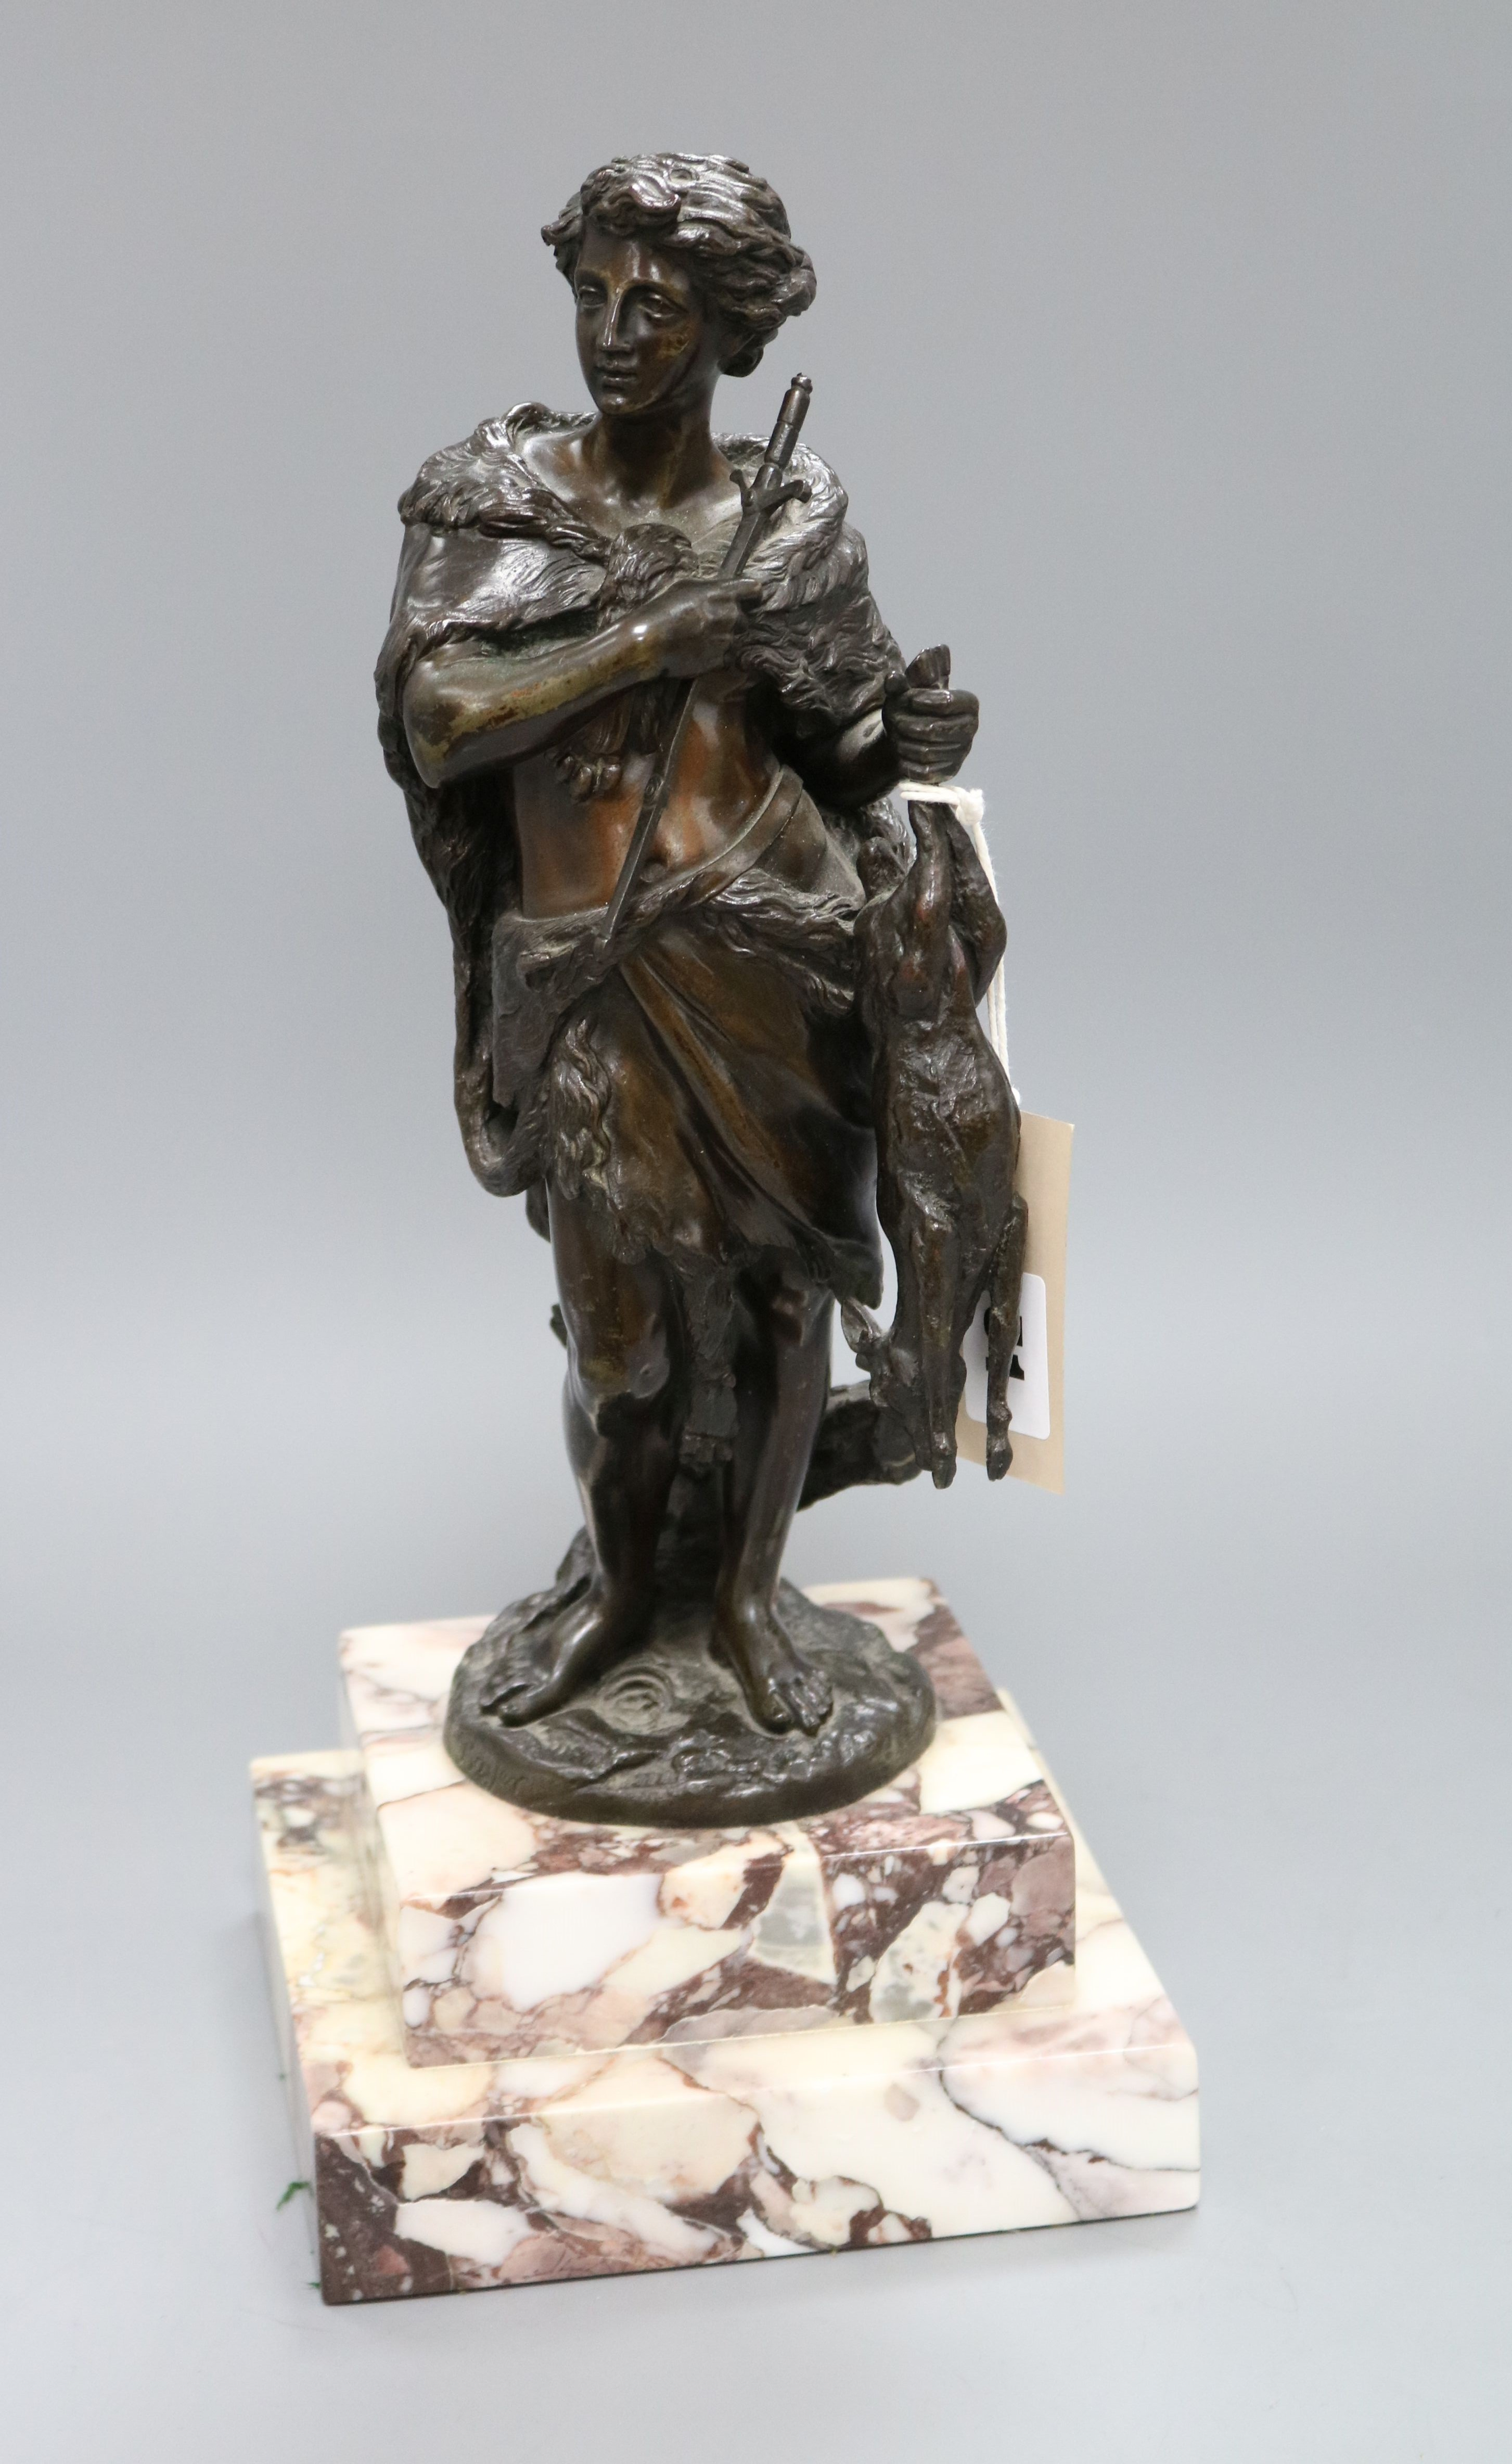 Lot 51 - Bayer, A figural 19th century bronze of a huntsman holding a hare, signed, height 38cm